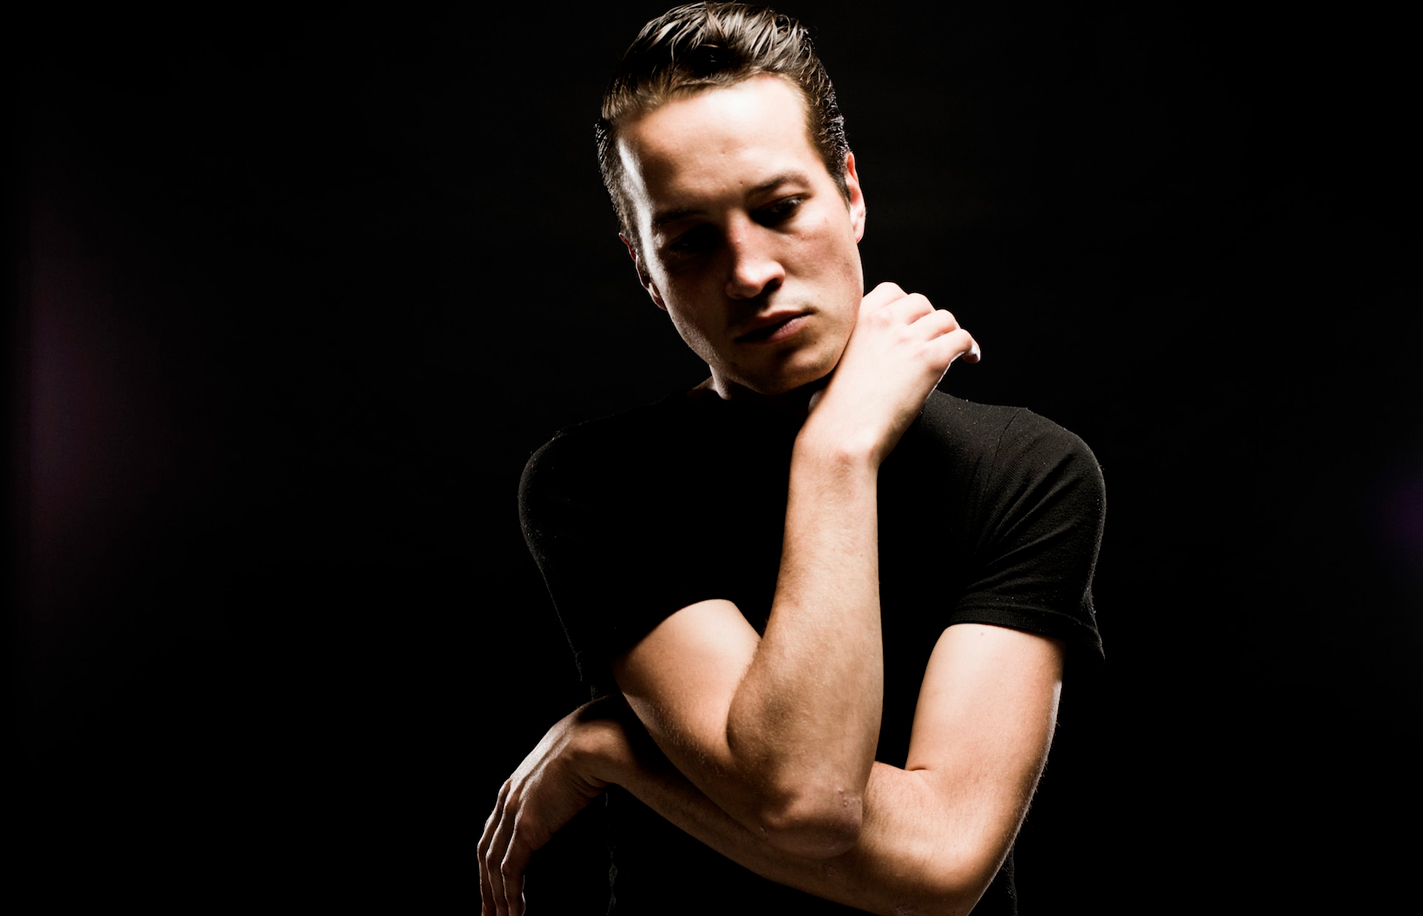 MARLON WILLIAMS (NUEVA ZELANDA)